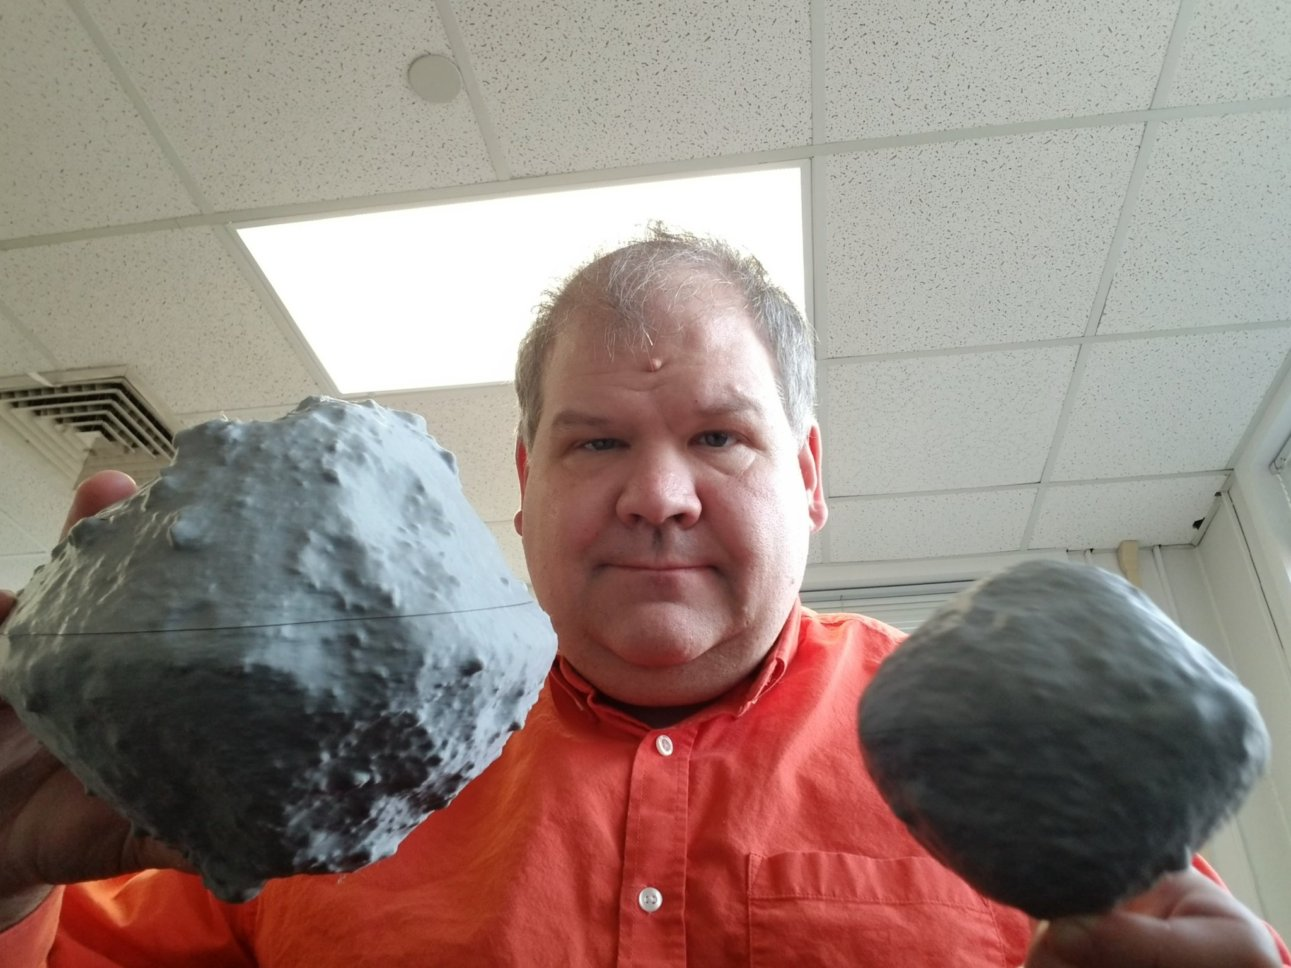 Larry Nittler with ASteroids